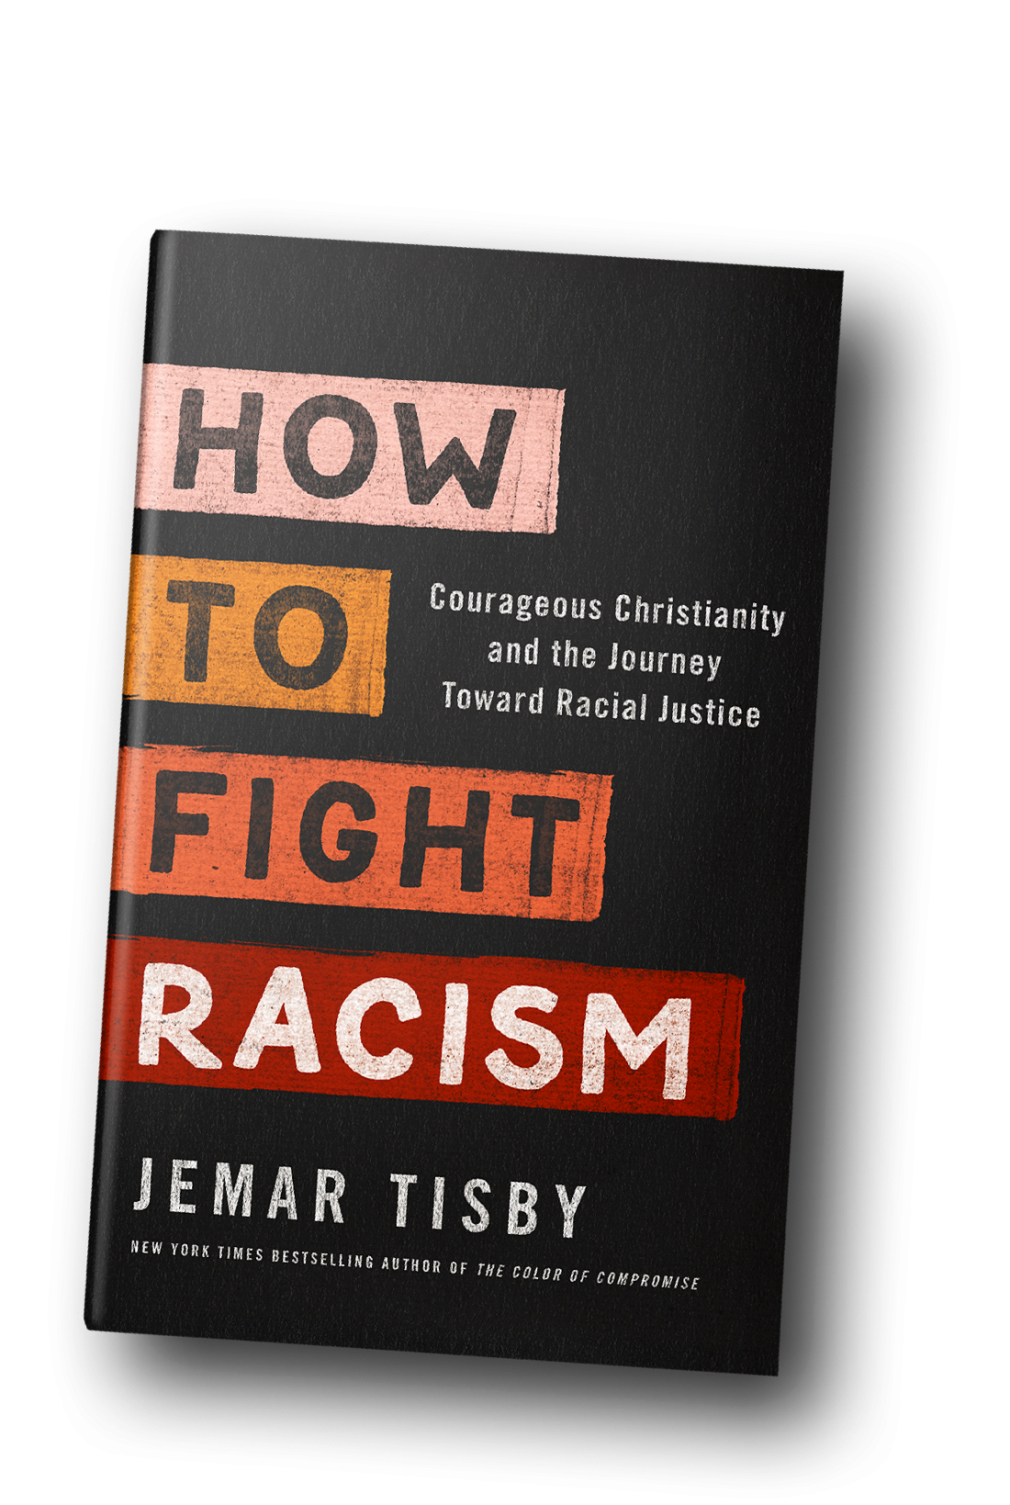 Jemar Tisby's How to Fight Racism